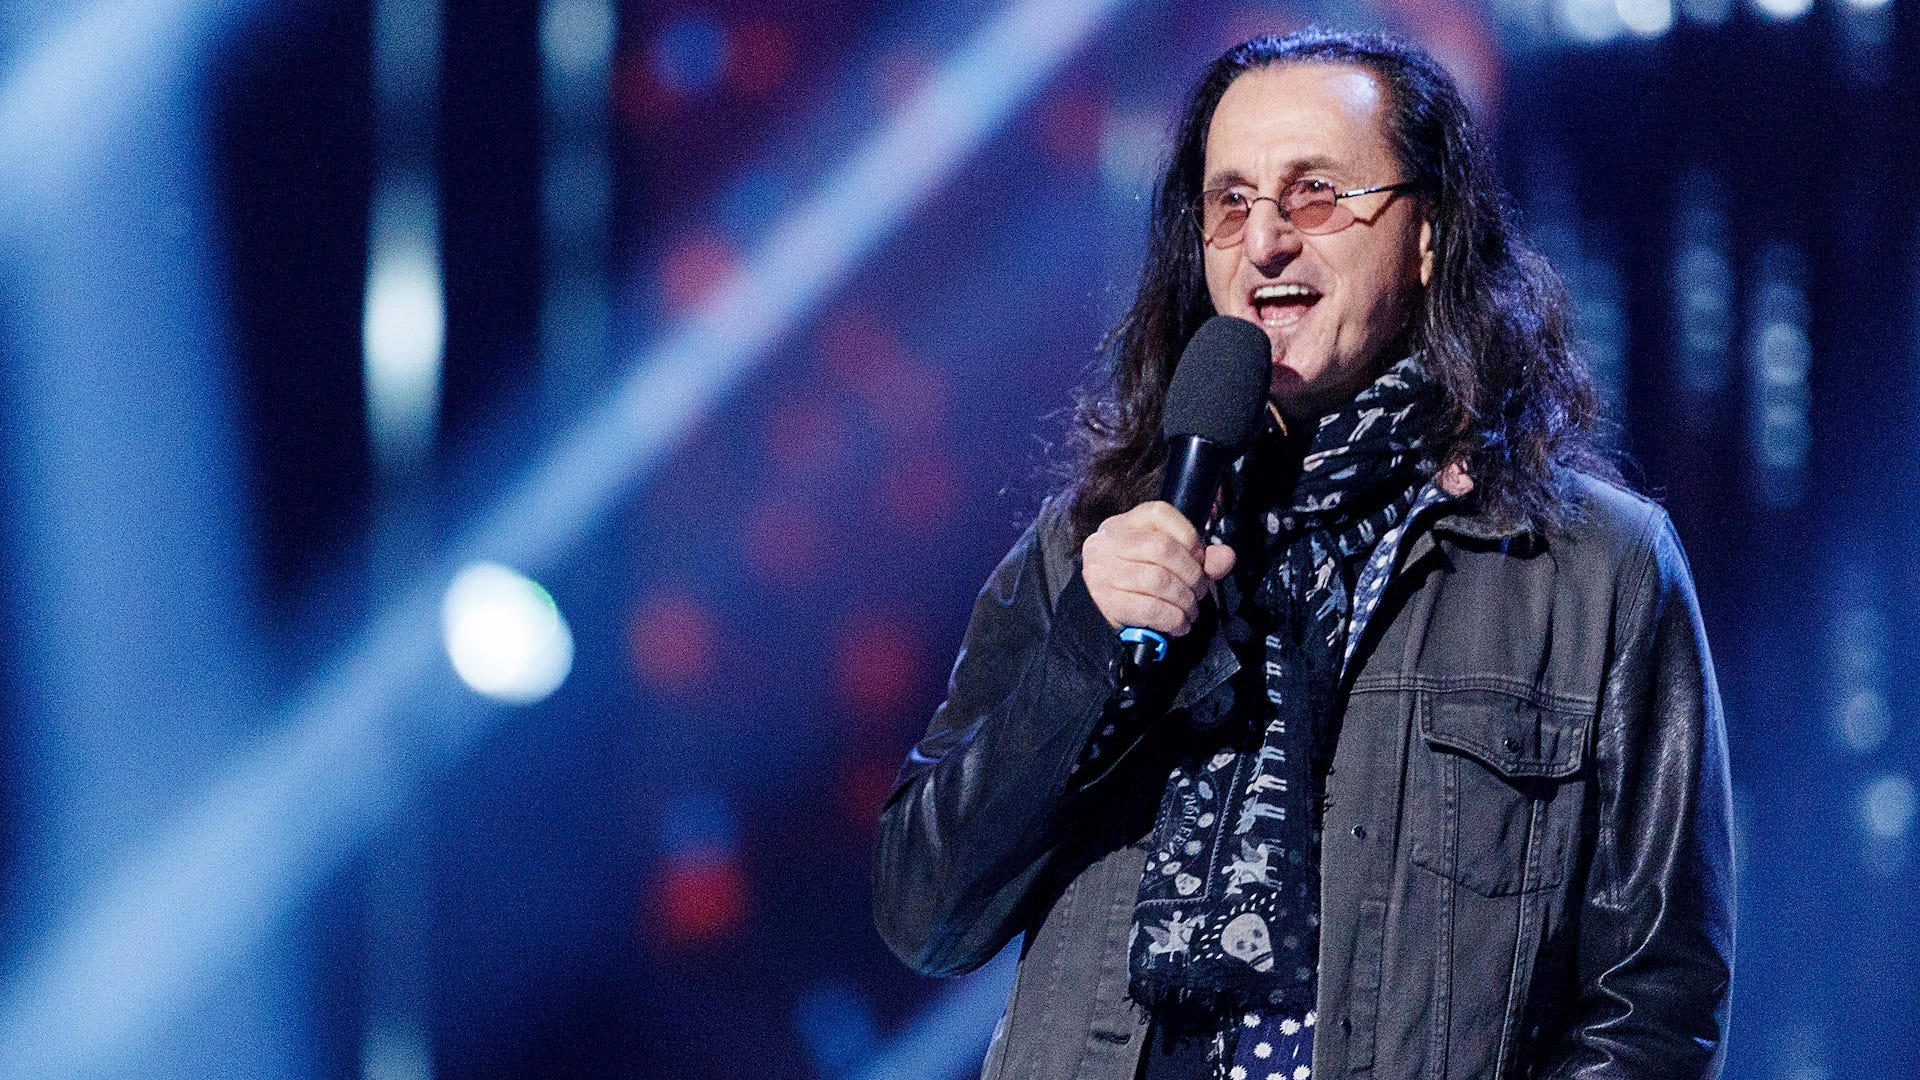 Geddy Lee of Rush on the 'greatest guitar solo ever recorded'